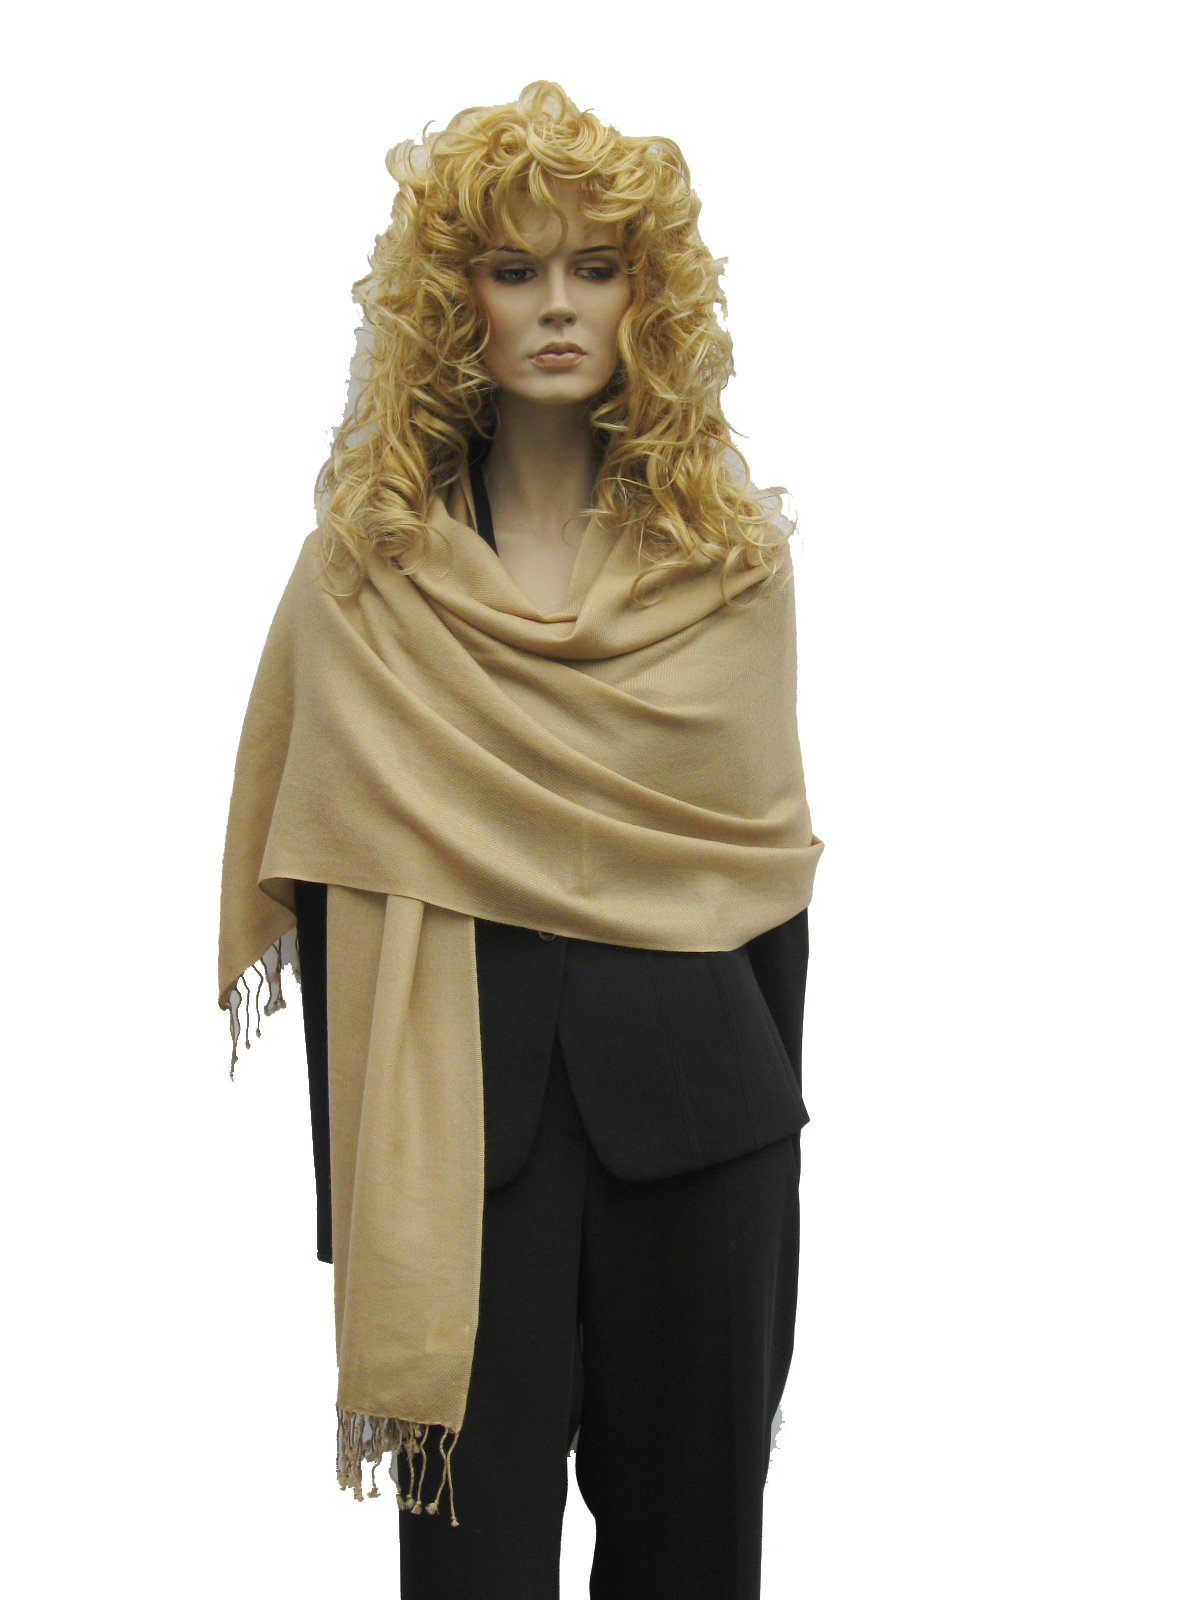 SCARF, CASHMERE SHAWL (2 PLY PURE PASHMINA) from Cashmere Pashmina Group (Camel)